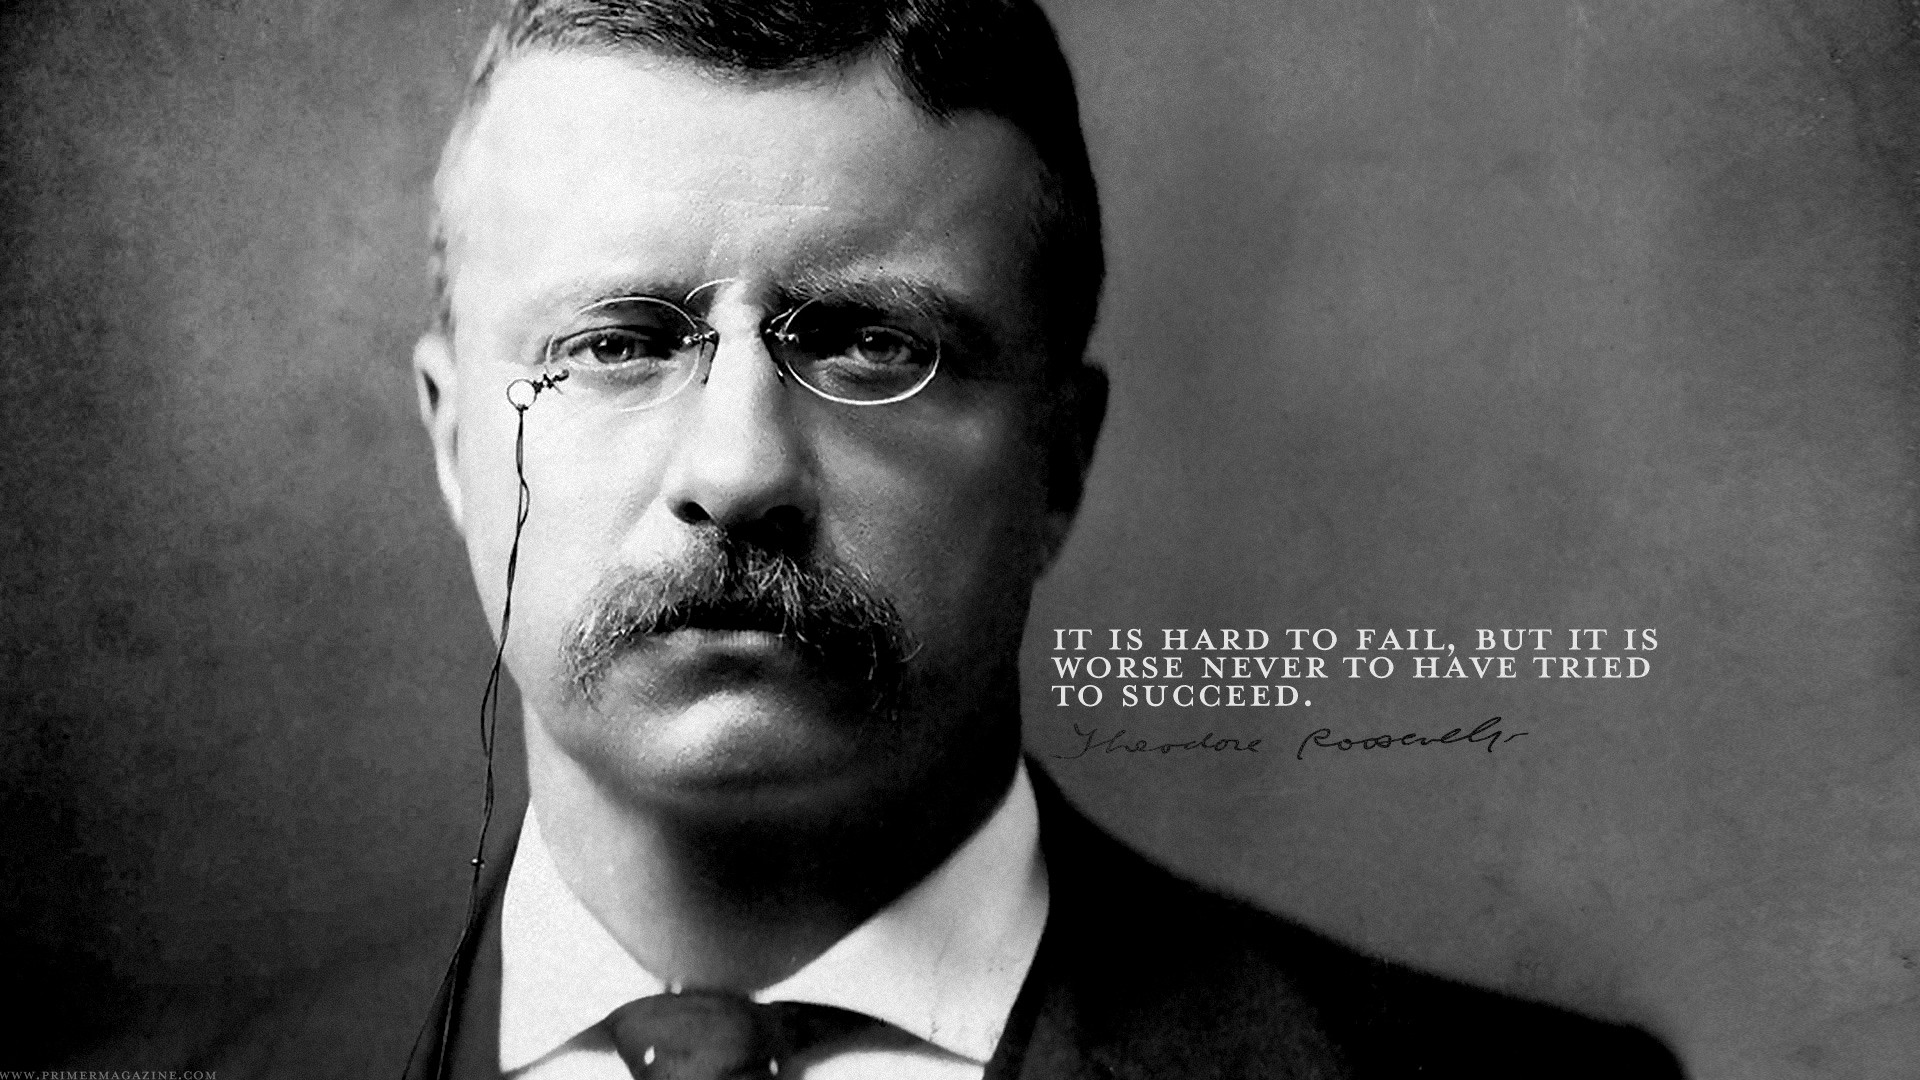 the life and leadership of theodore roosevelt Theodore roosevelt summary: theodore roosevelt or teddy, was the 26th president of the united states roosevelt was born in 1858 in new york roosevelt was born in 1858 in new york he was primarily schooled at home, followed by harvard college and columbia law school.